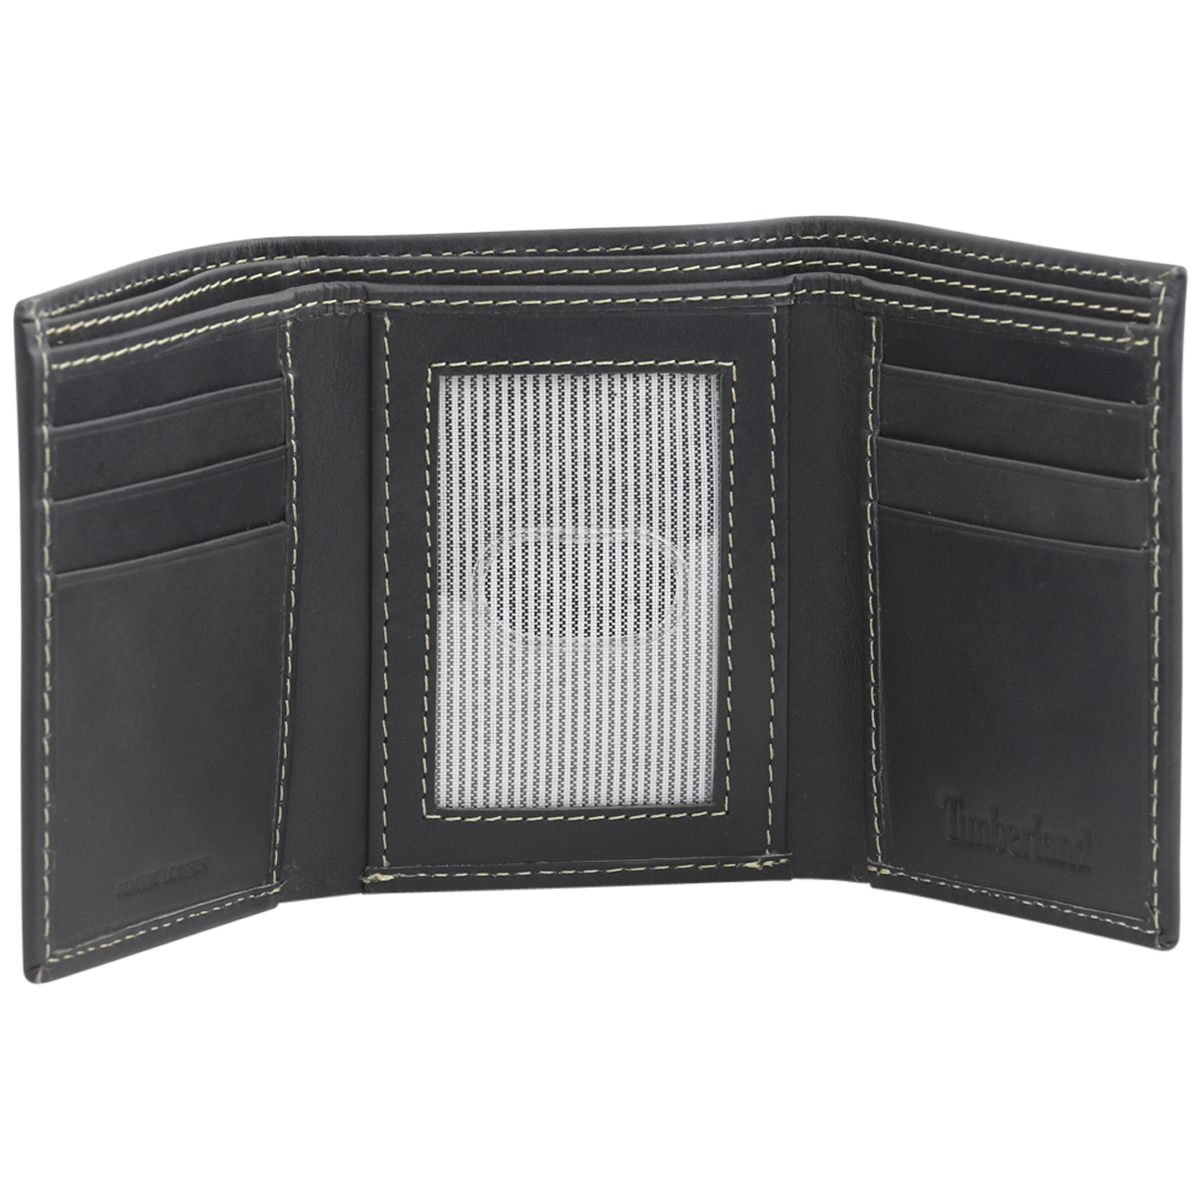 Timberland-Men-039-s-Cloudy-Genuine-Leather-Tri-Fold-Wallet thumbnail 6